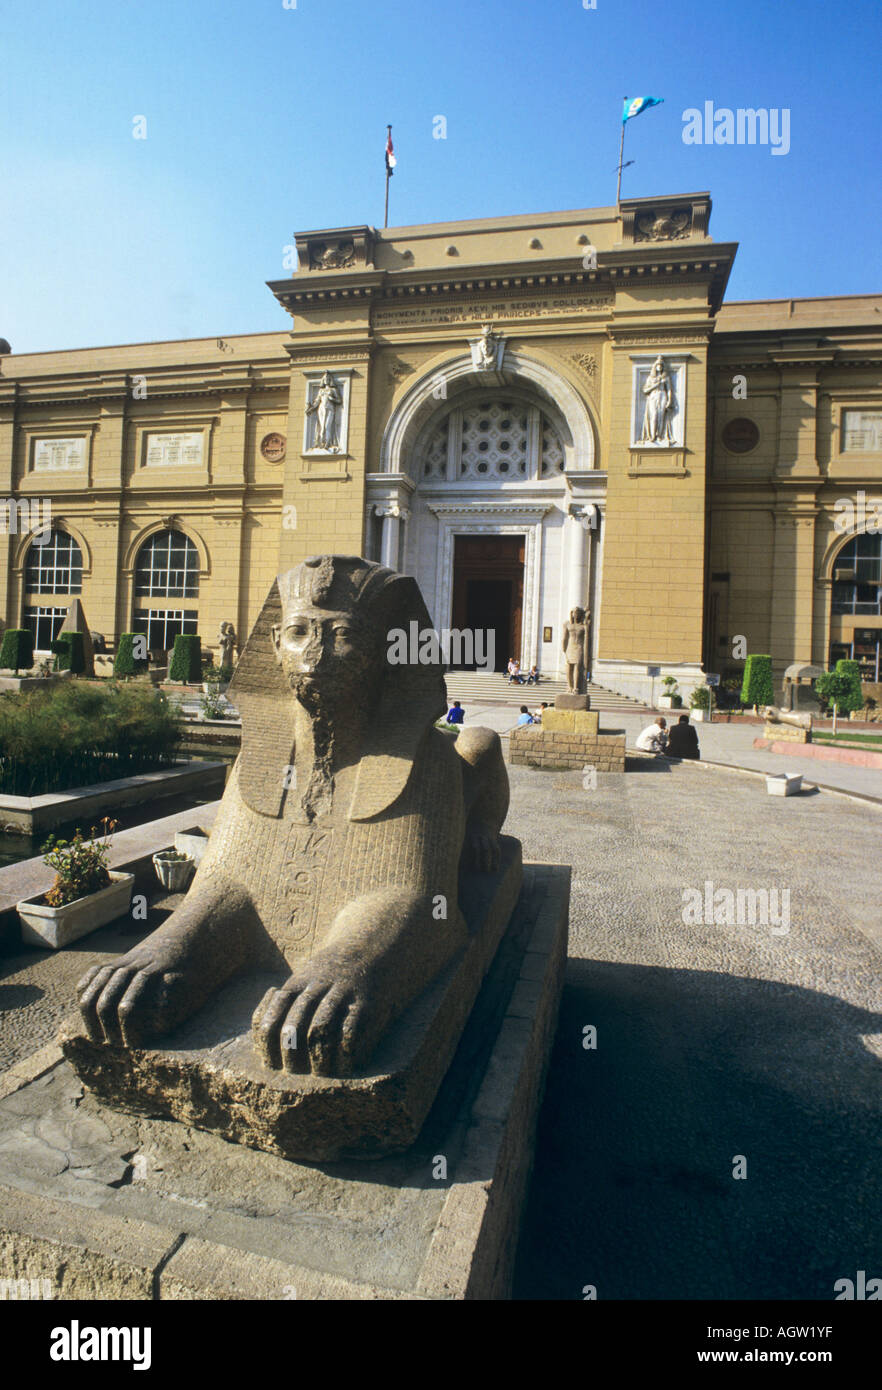 Egypt, entrance to the Cairo Museum, treasure house of European antiquity, inc the mask of Tutankamun, guarded by a sphinx. - Stock Image